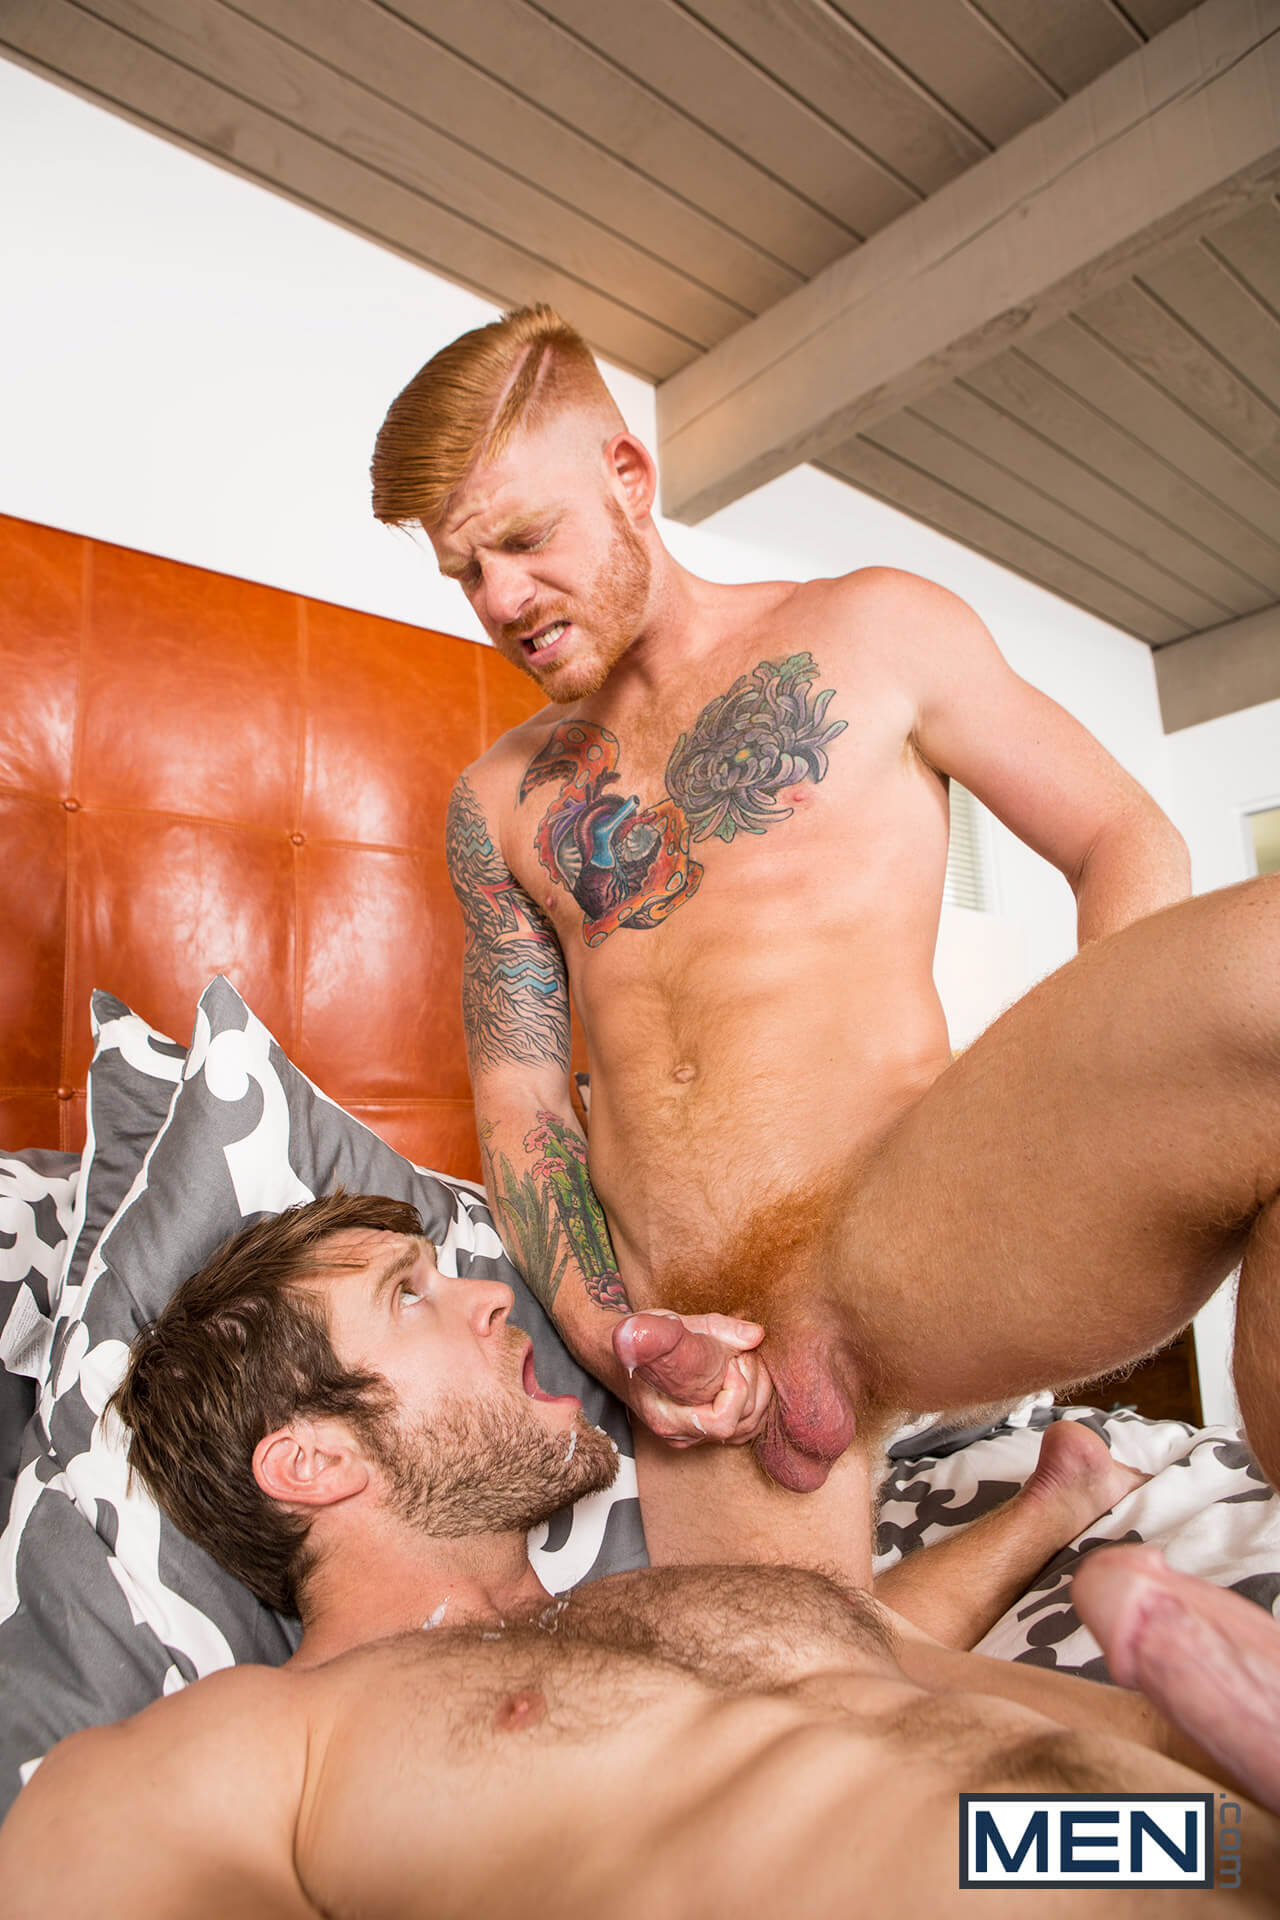 Colby Keller fuck Bennett Anthony gay hot daddy dude men porn Make Me An Offer